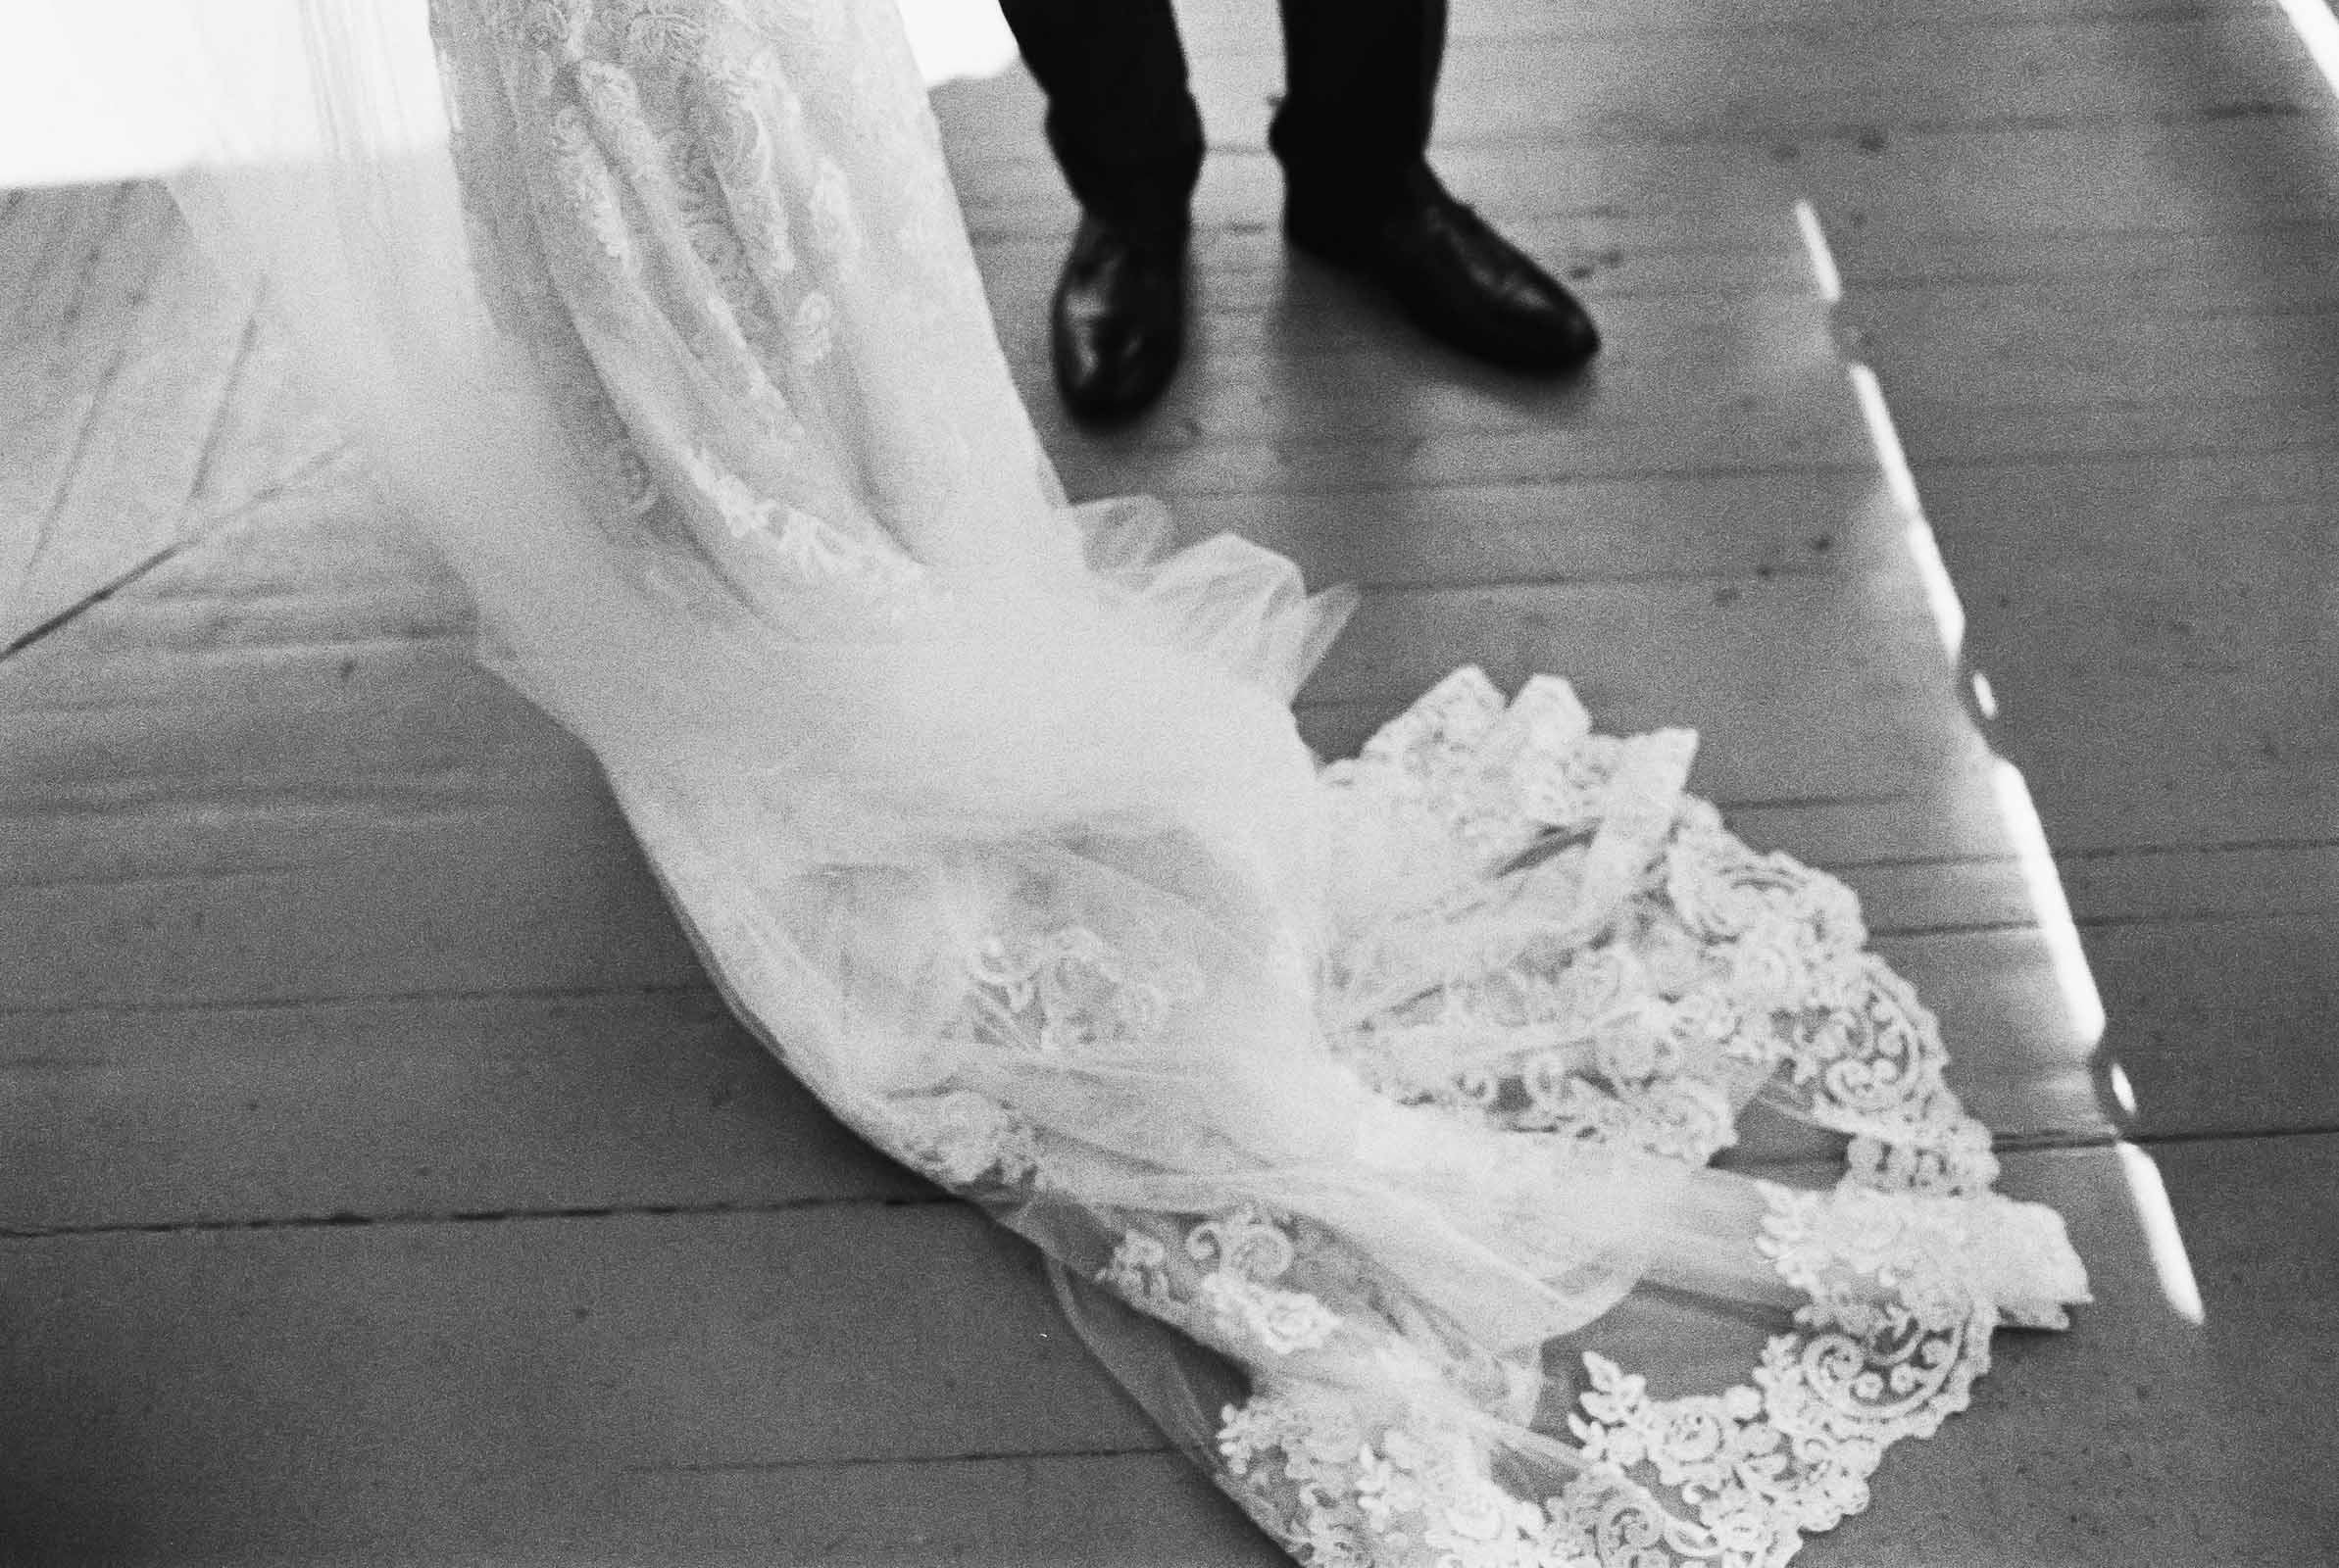 Lace wedding gown and veil captured in black and white at Seattle Wedding venue Lord Hill Farms